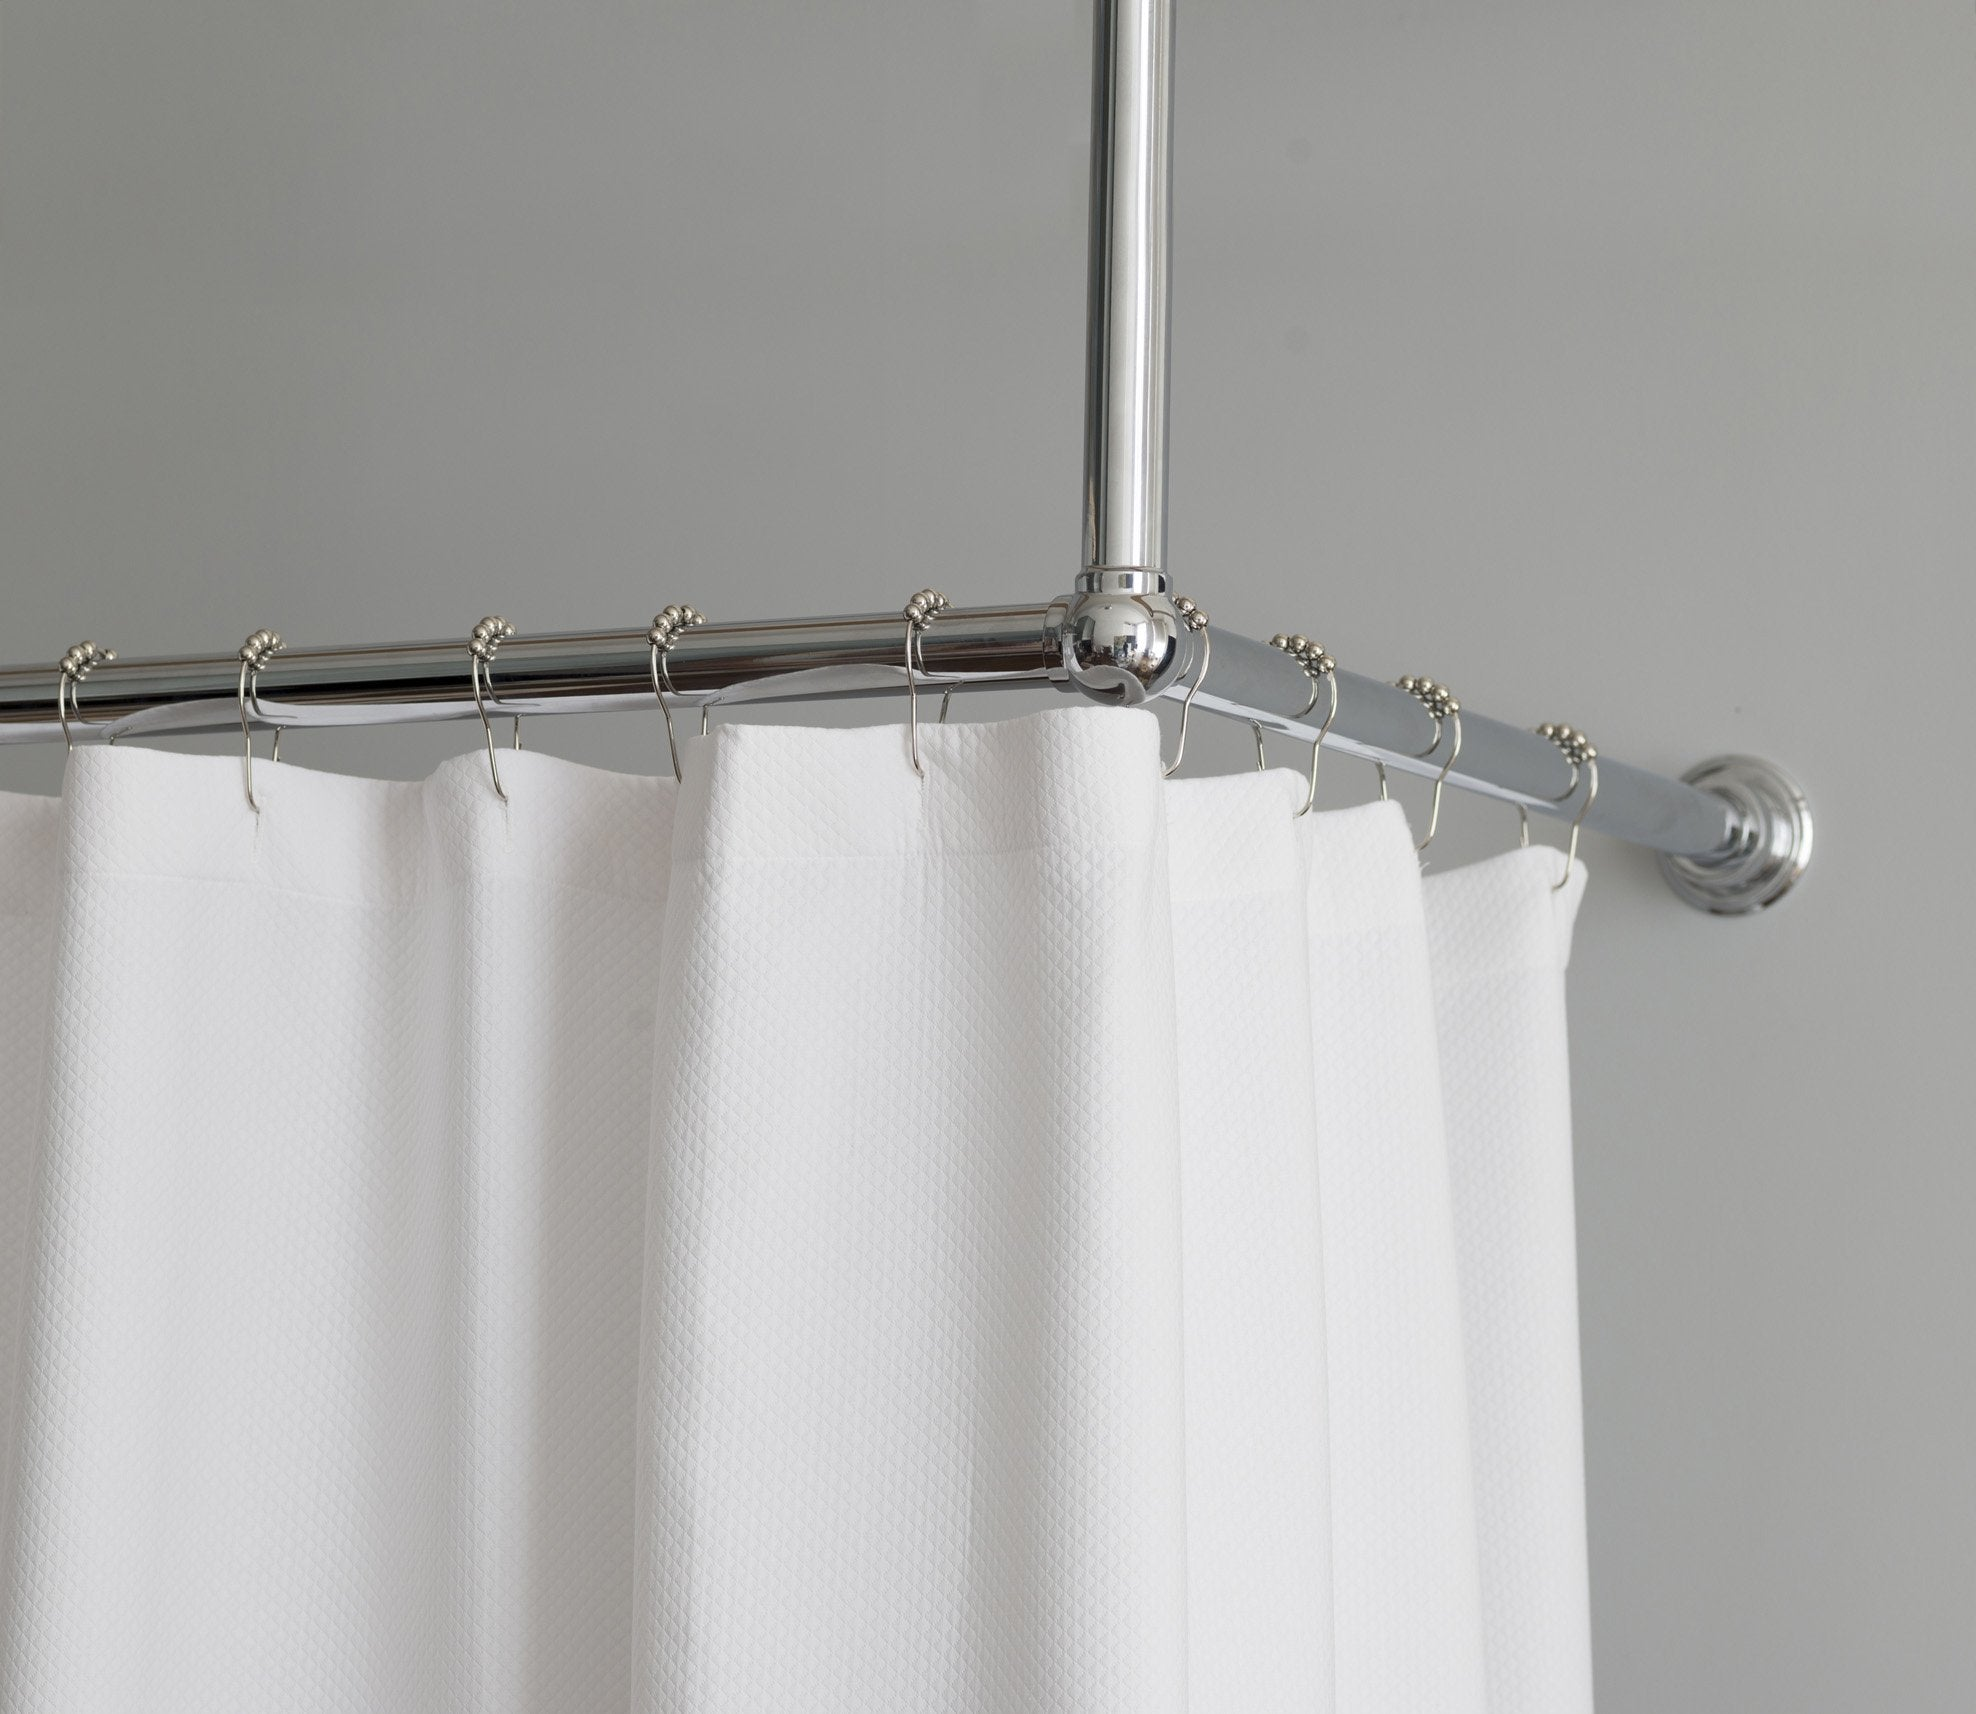 Shower Curtain Rod L Shaped Chrome | www.redglobalmx.org